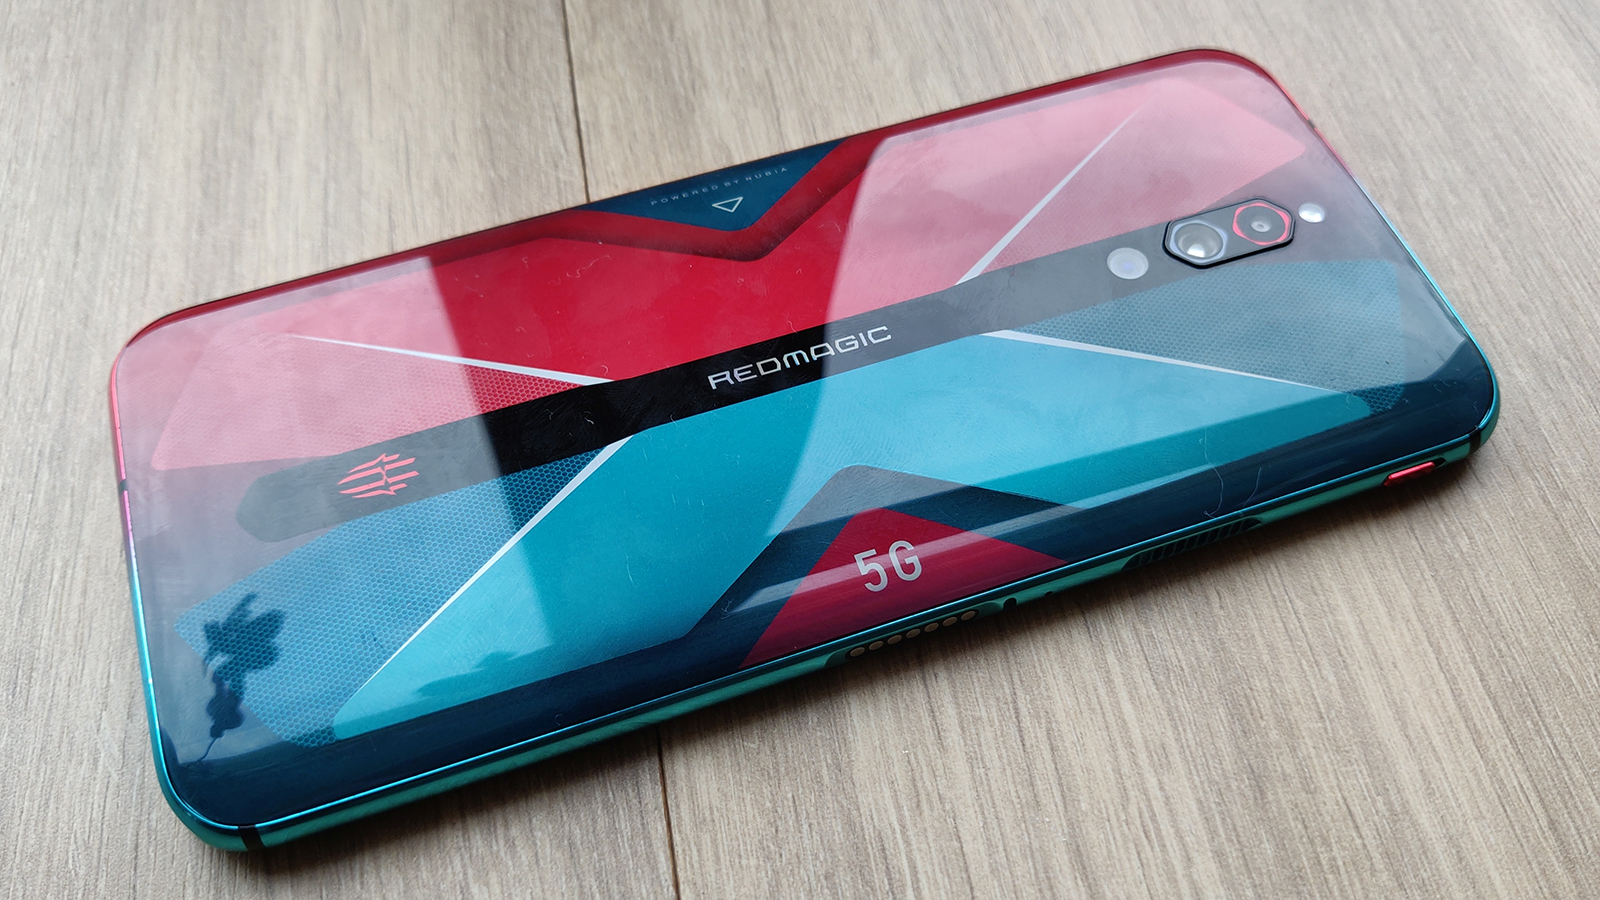 Nubia Red Magic 6 gaming phone launches soon, and some features have been teased